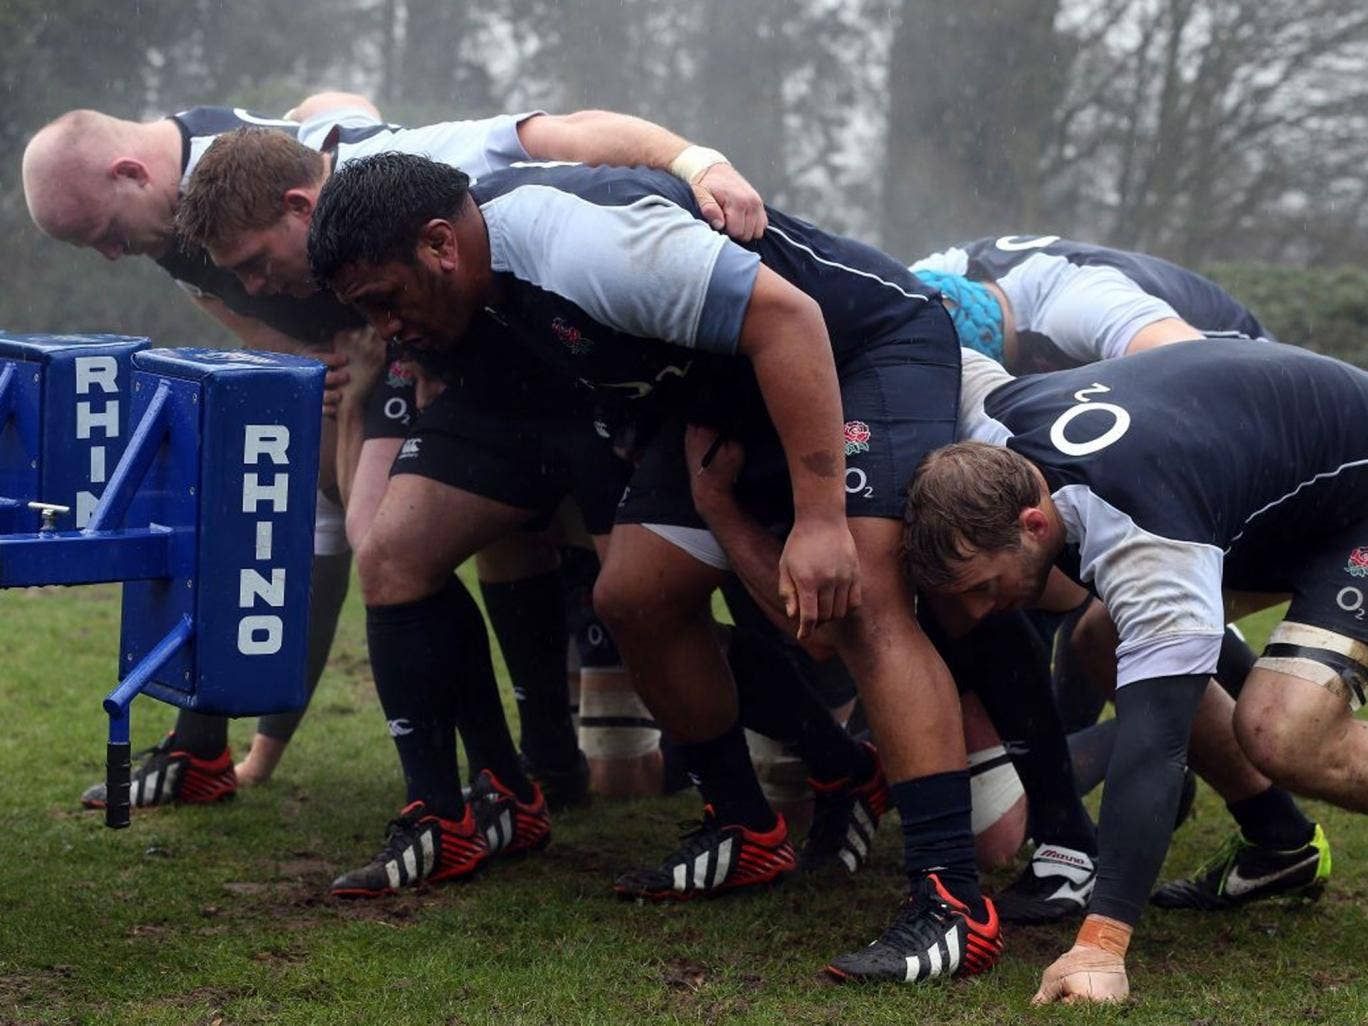 Final push: England's scrum get in some practice ready for two of the most important games in this emerging team's history